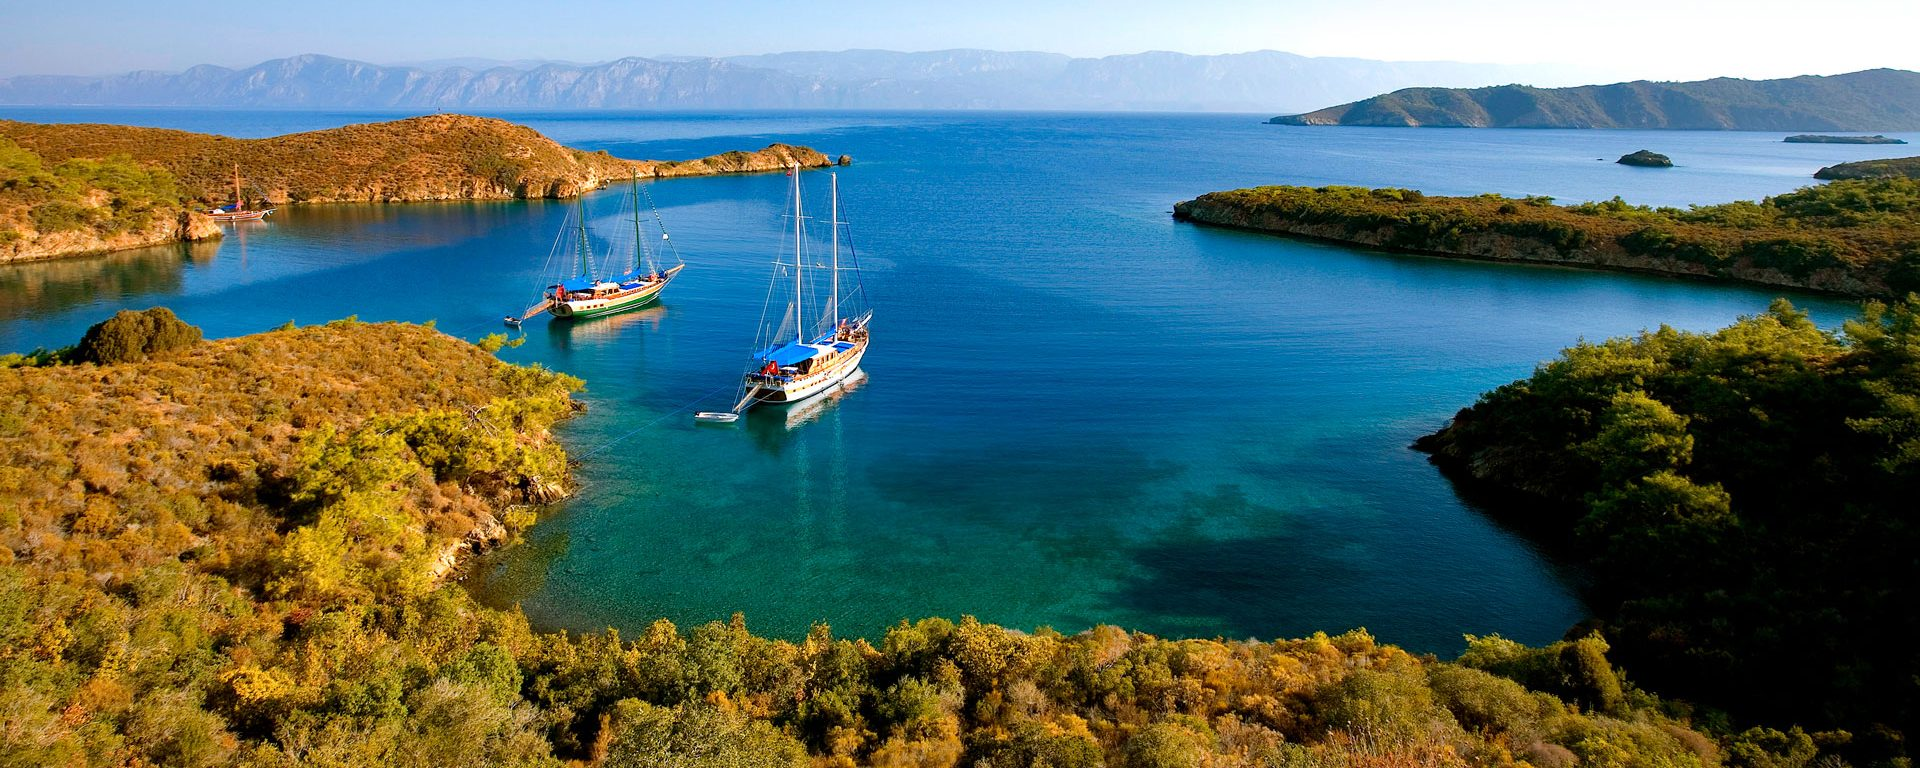 A gulet (traditional Turkish sailing boat) mooring at Tuzla Bay on the Aegean coast, Turkey